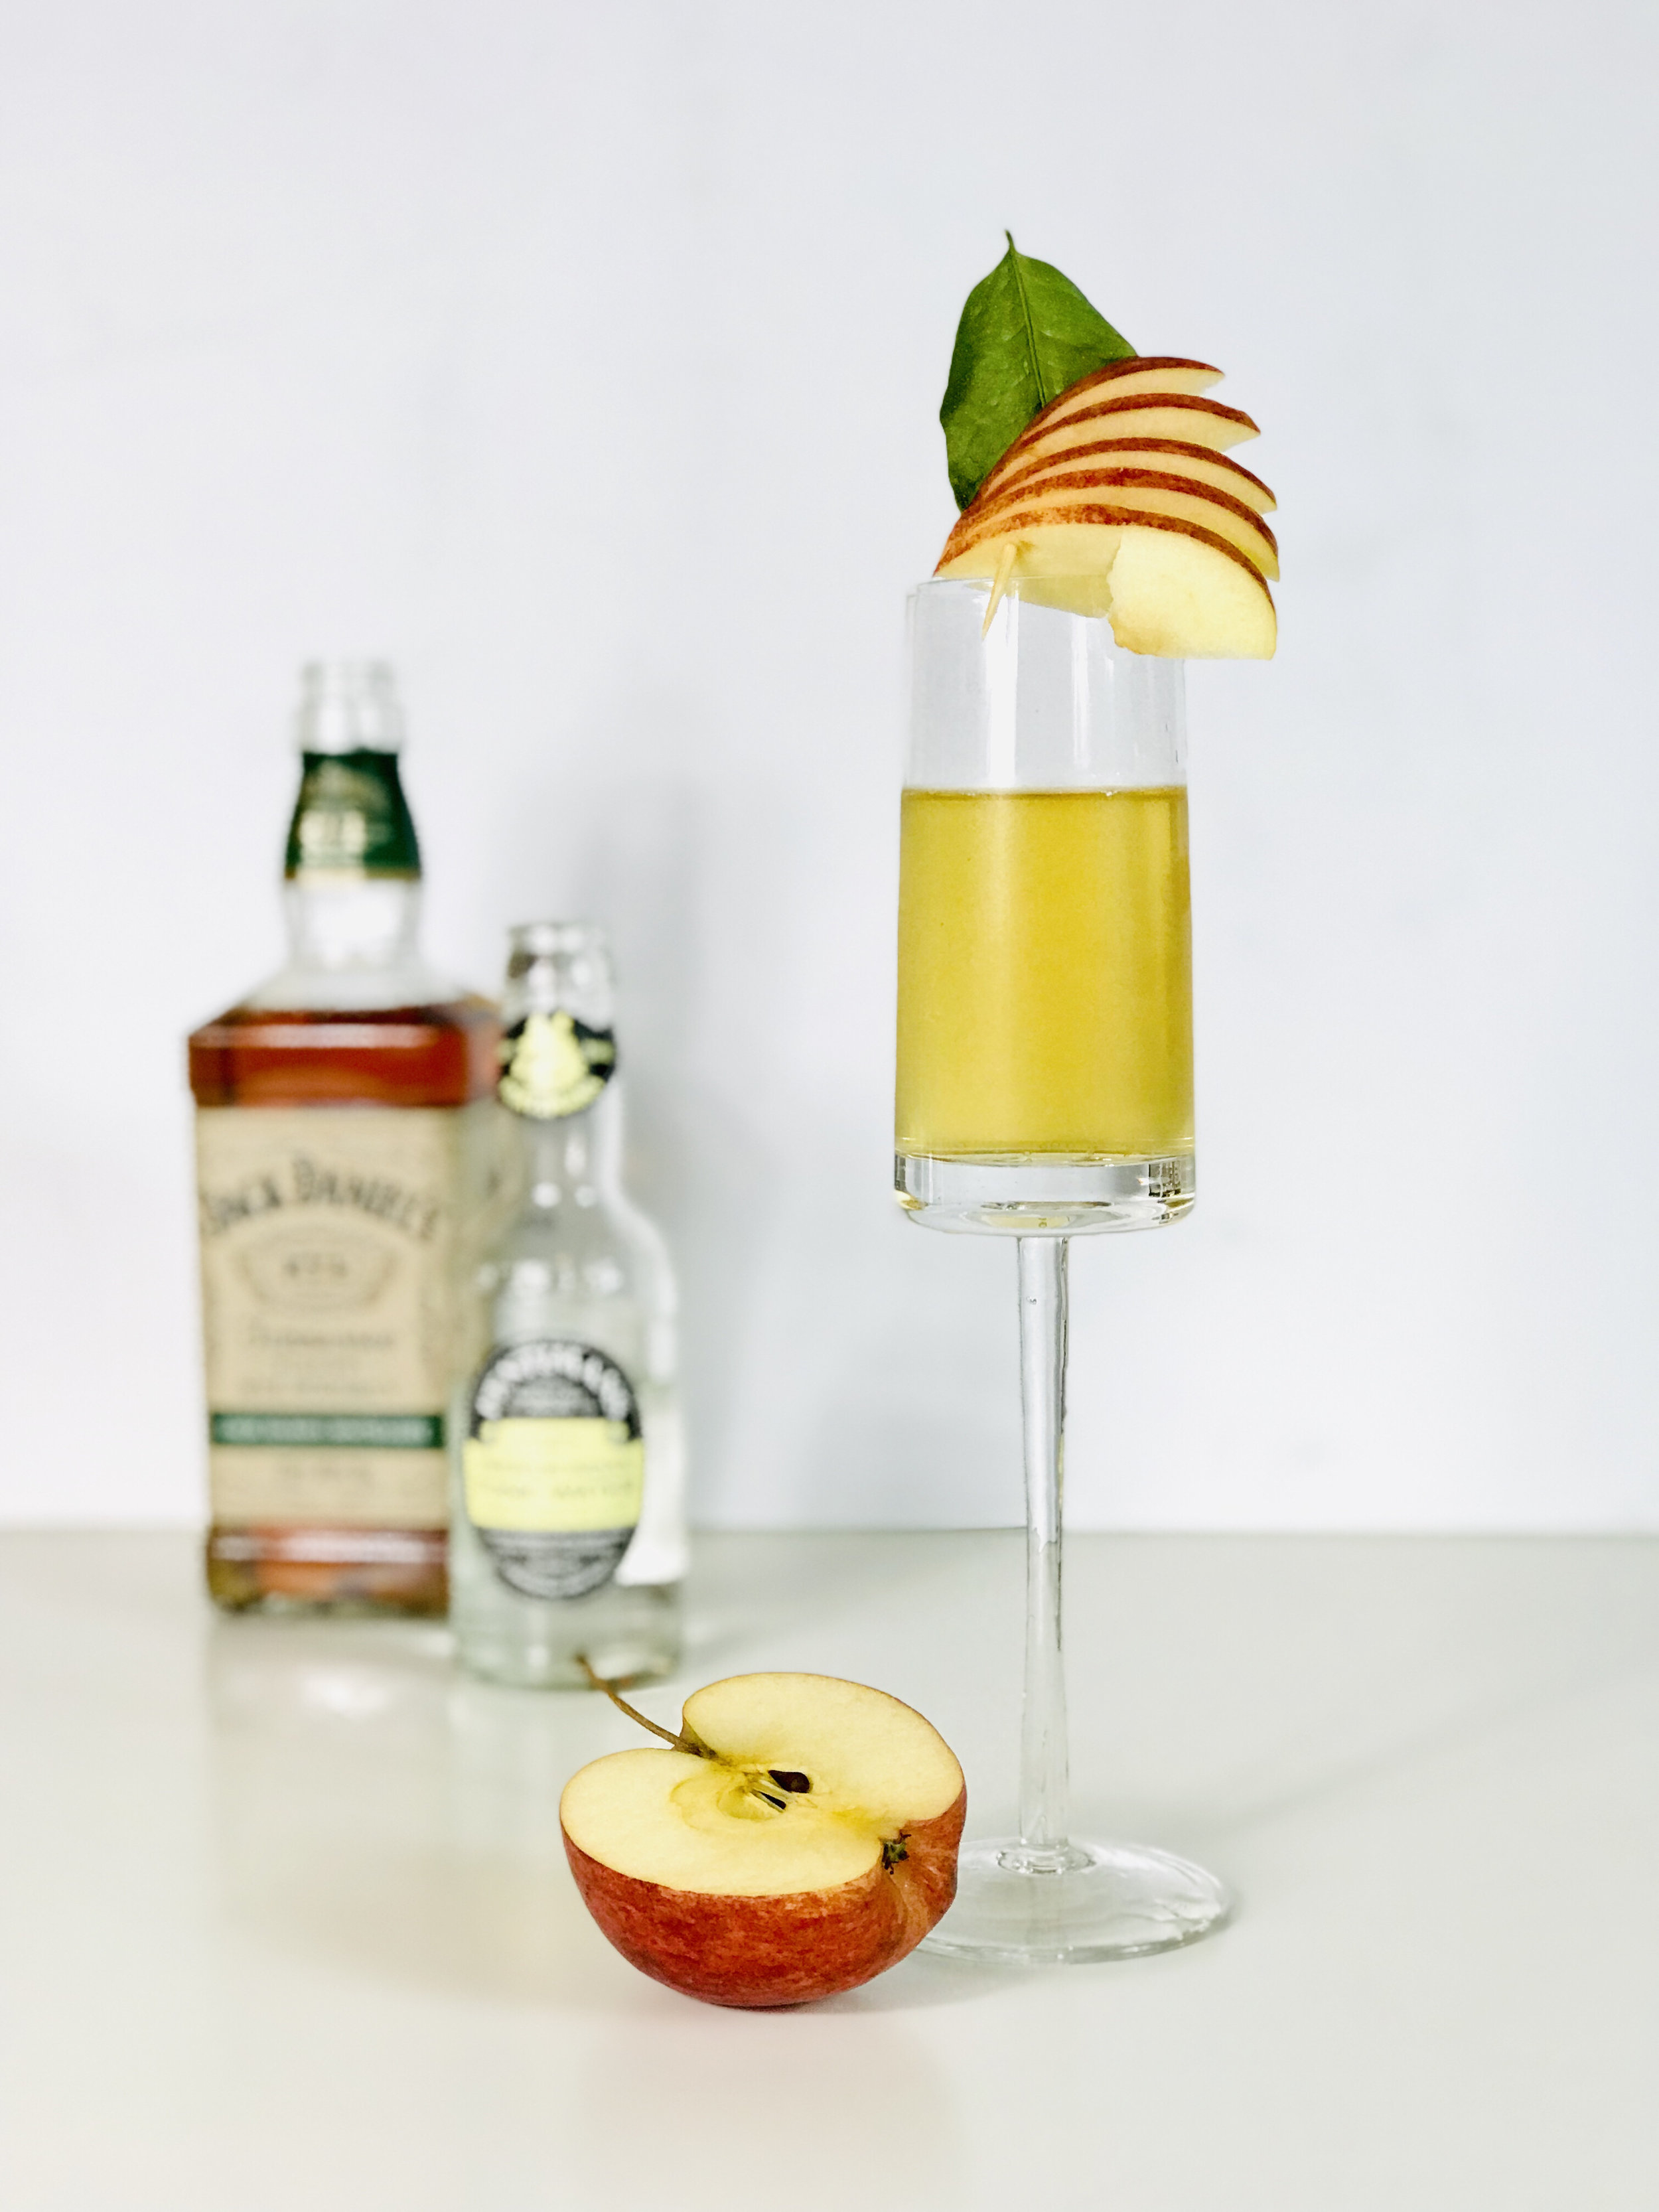 Apple Rye cocktail with Jack Daniels whiskey and Fentimans Indian tonic water.